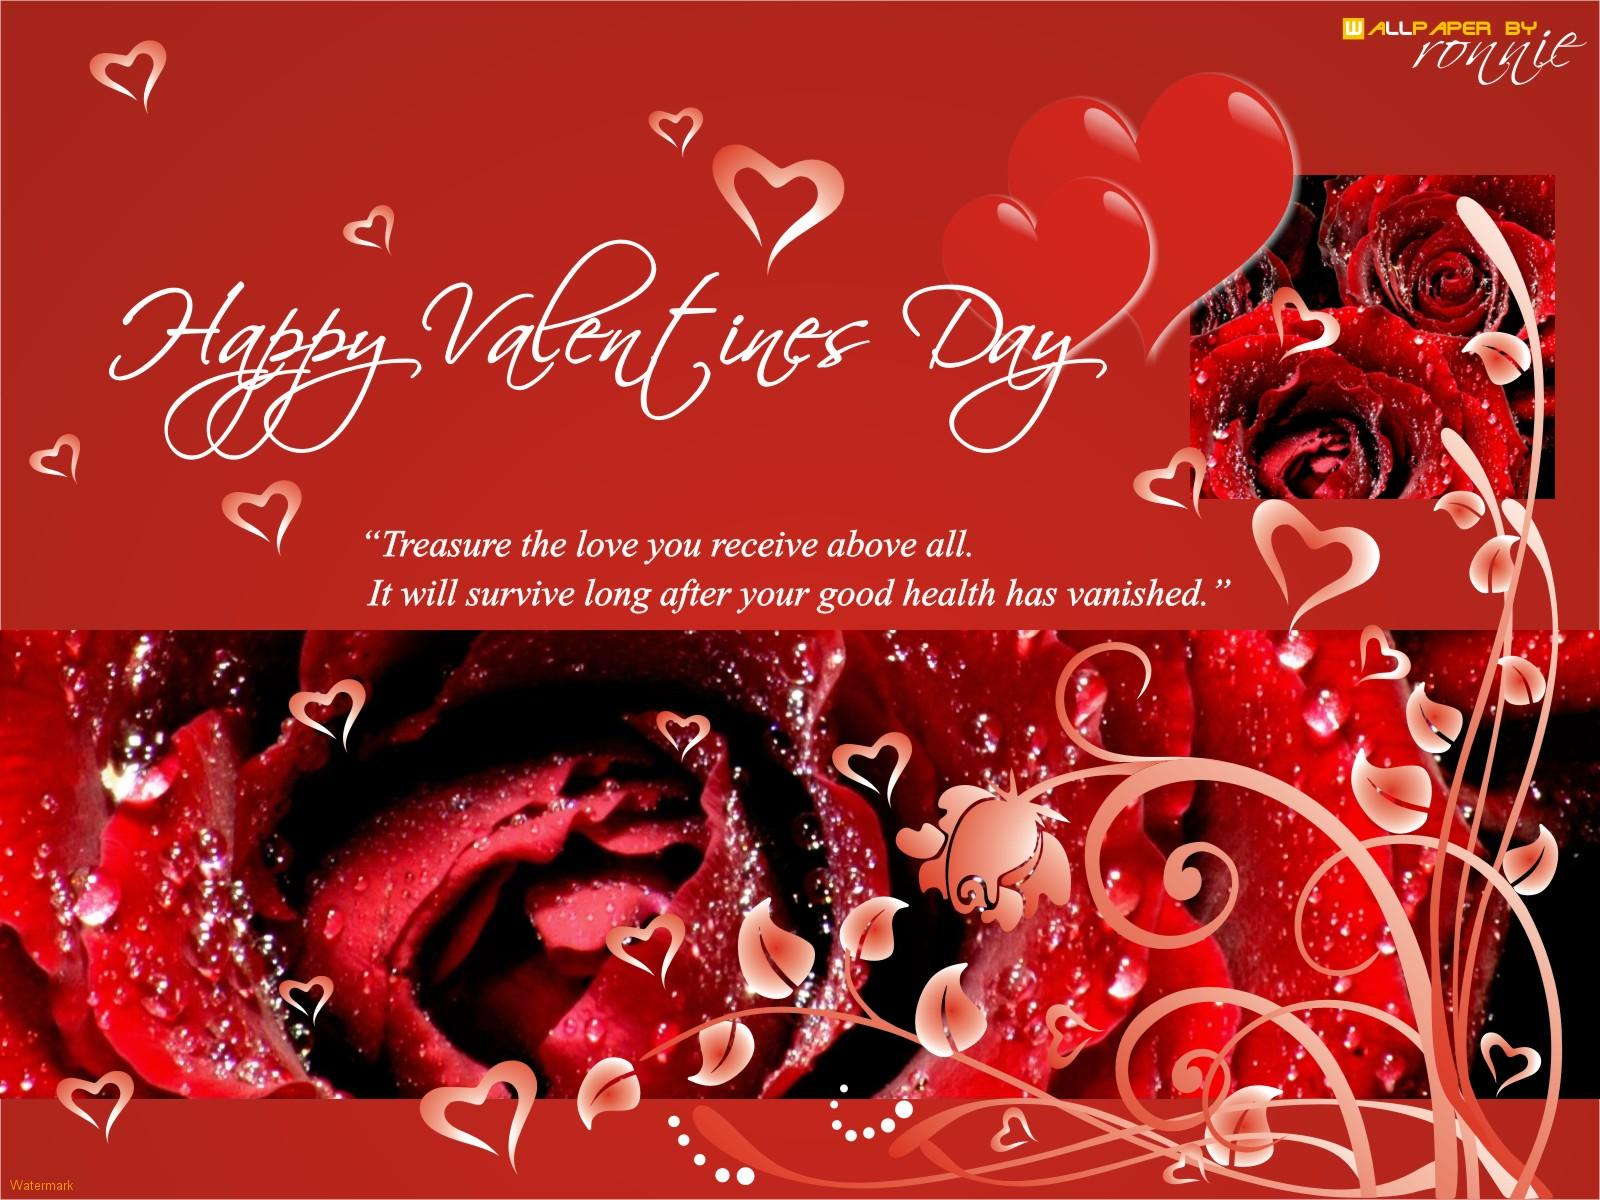 Skd: Valentine Day SMS and Valentine Day Messages